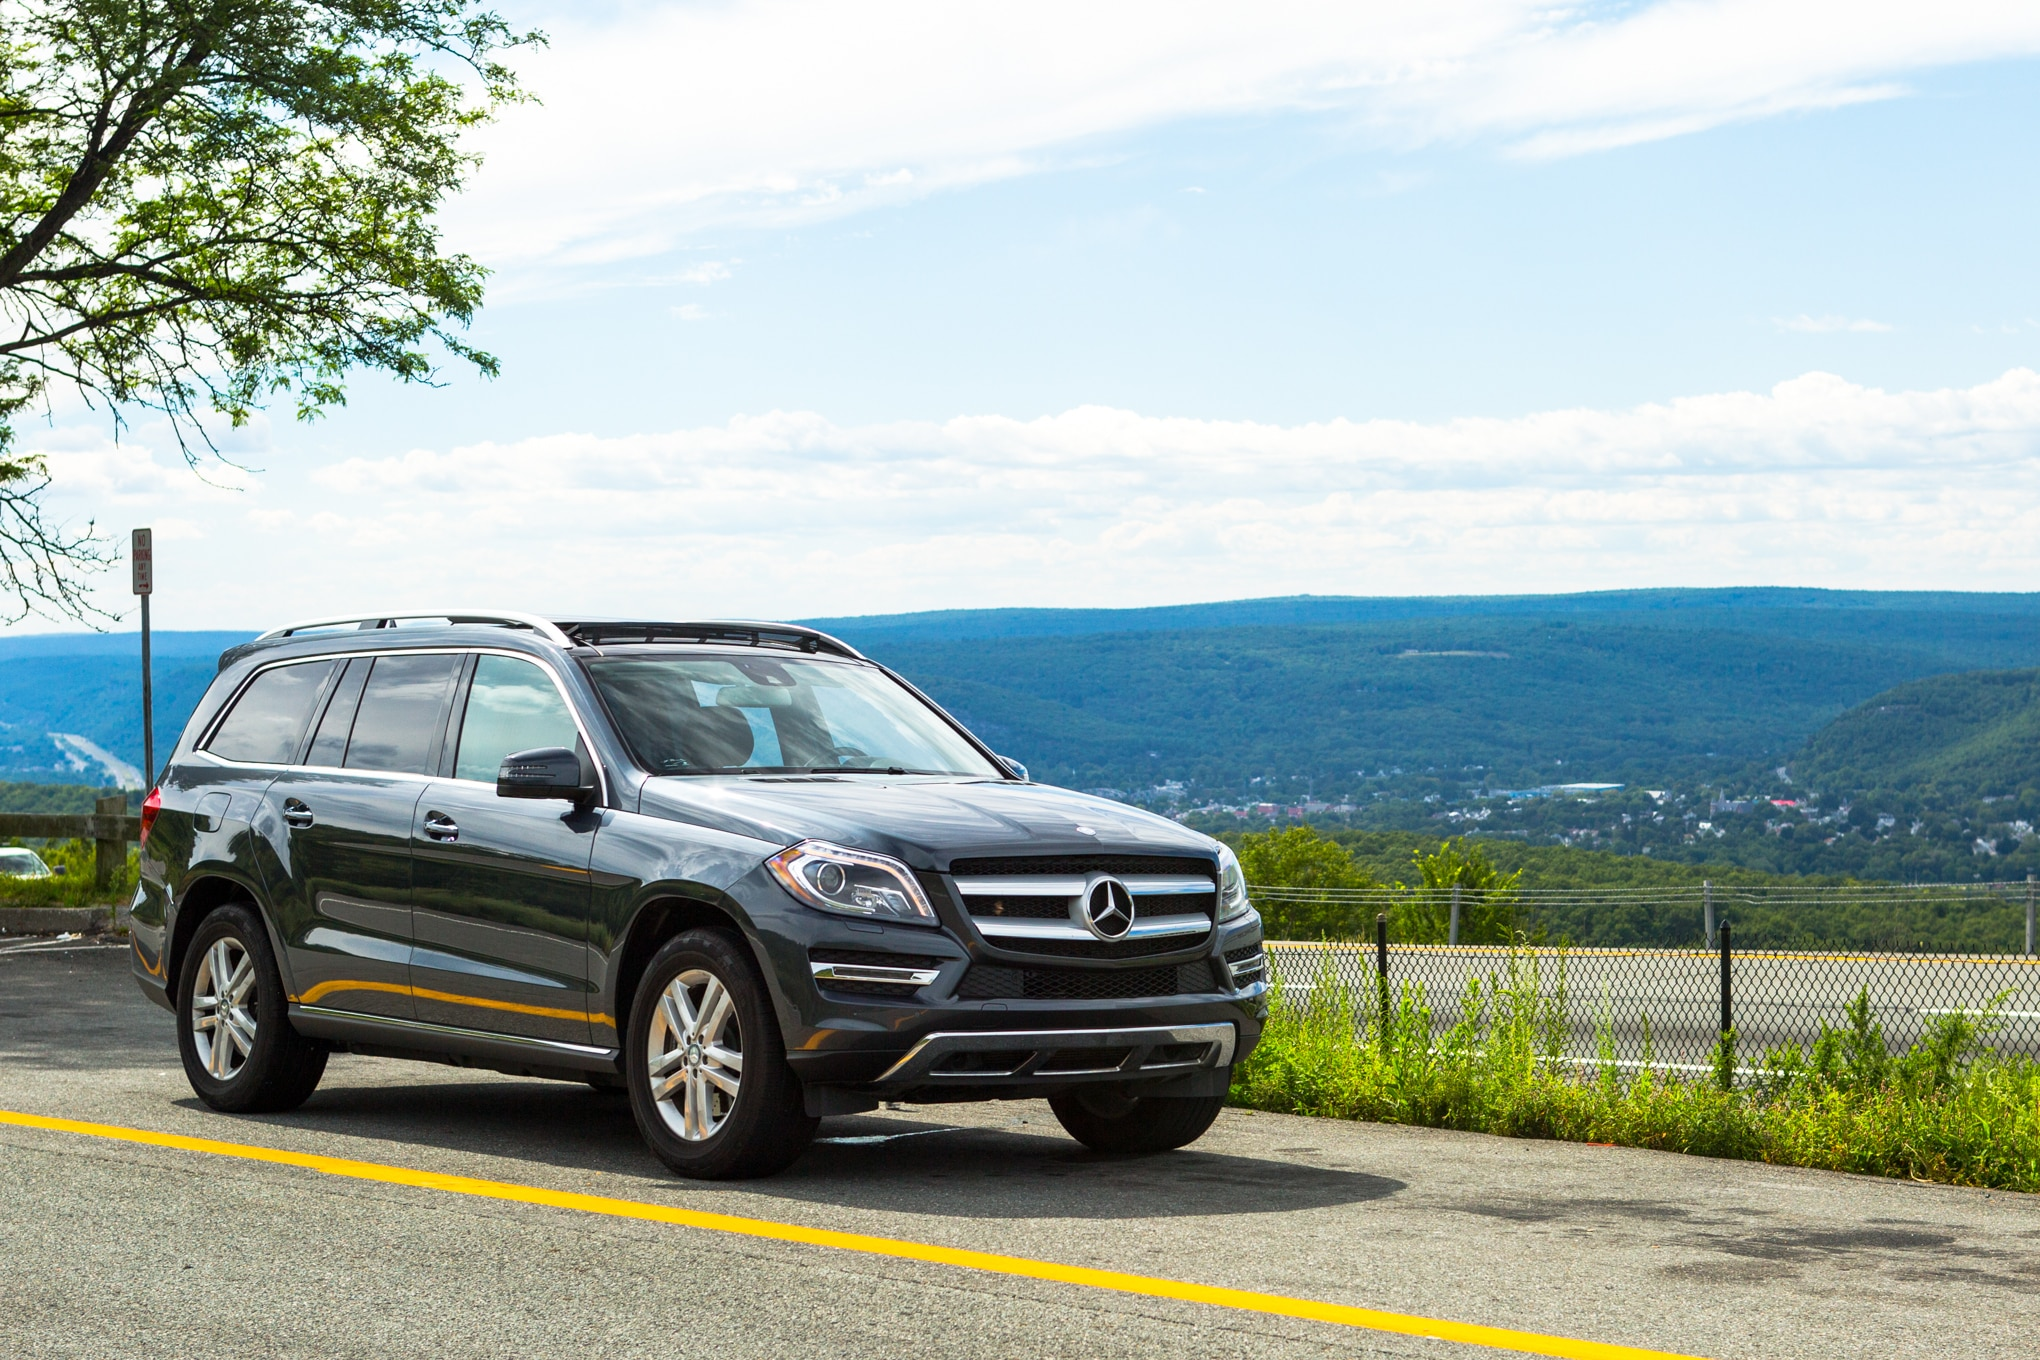 2014 Mercedes Benz GL450 Front Right Side View 31